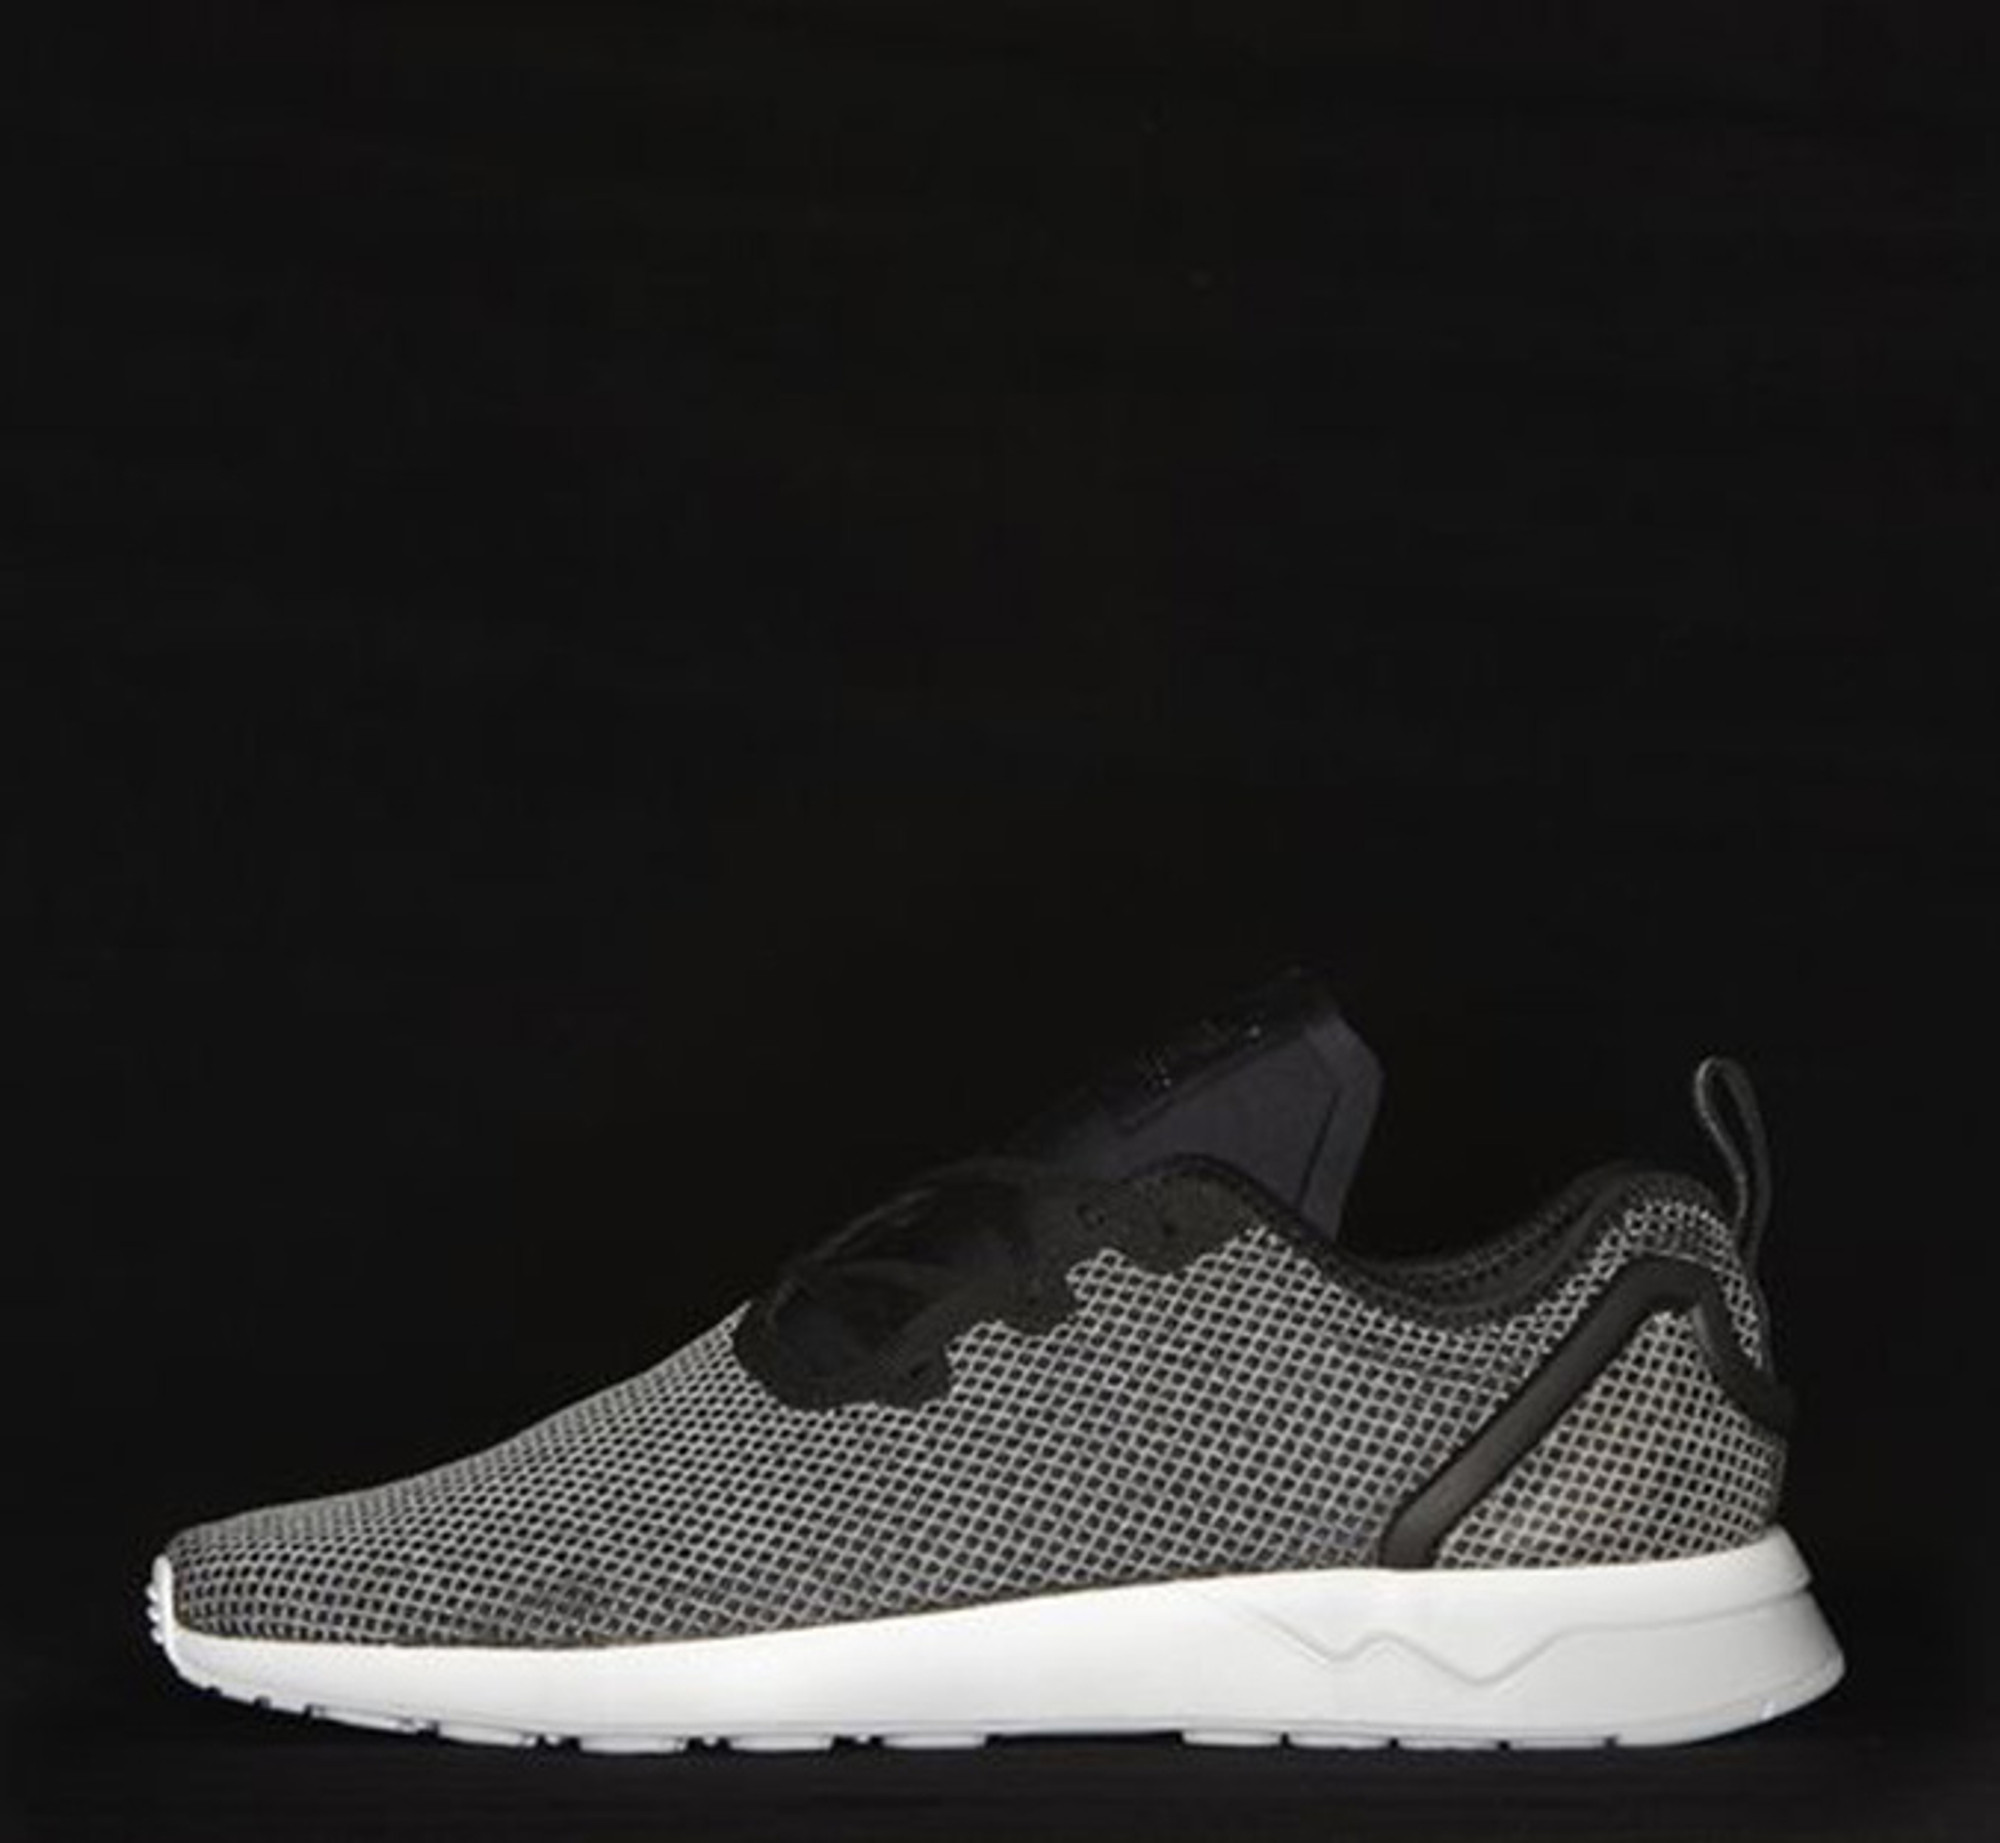 reputable site 69807 ec6bd ... adidas ZX FLUX ADV ASYM (S79050) ...